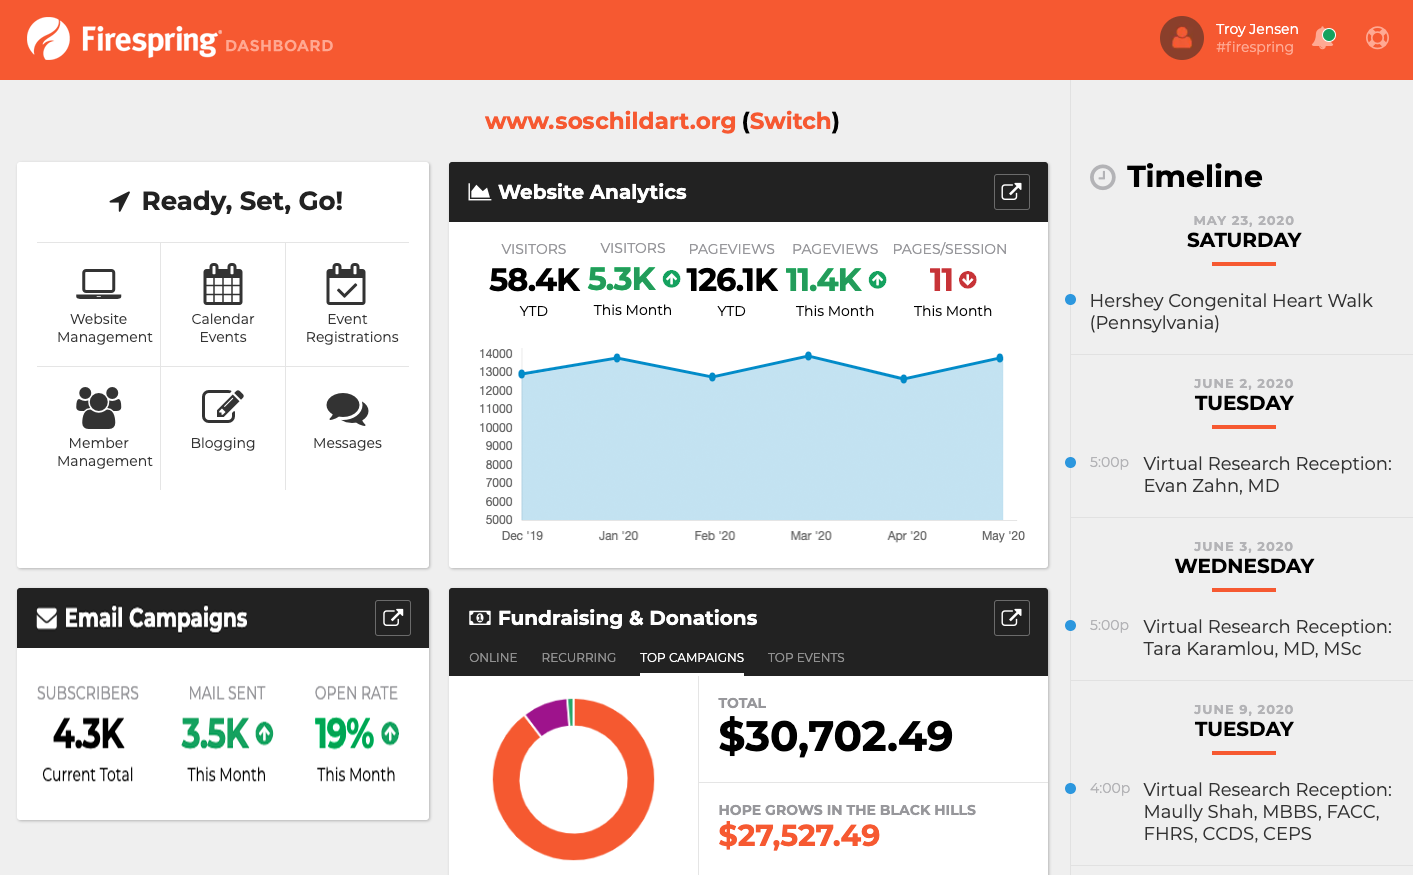 mission management dashboard screenshot